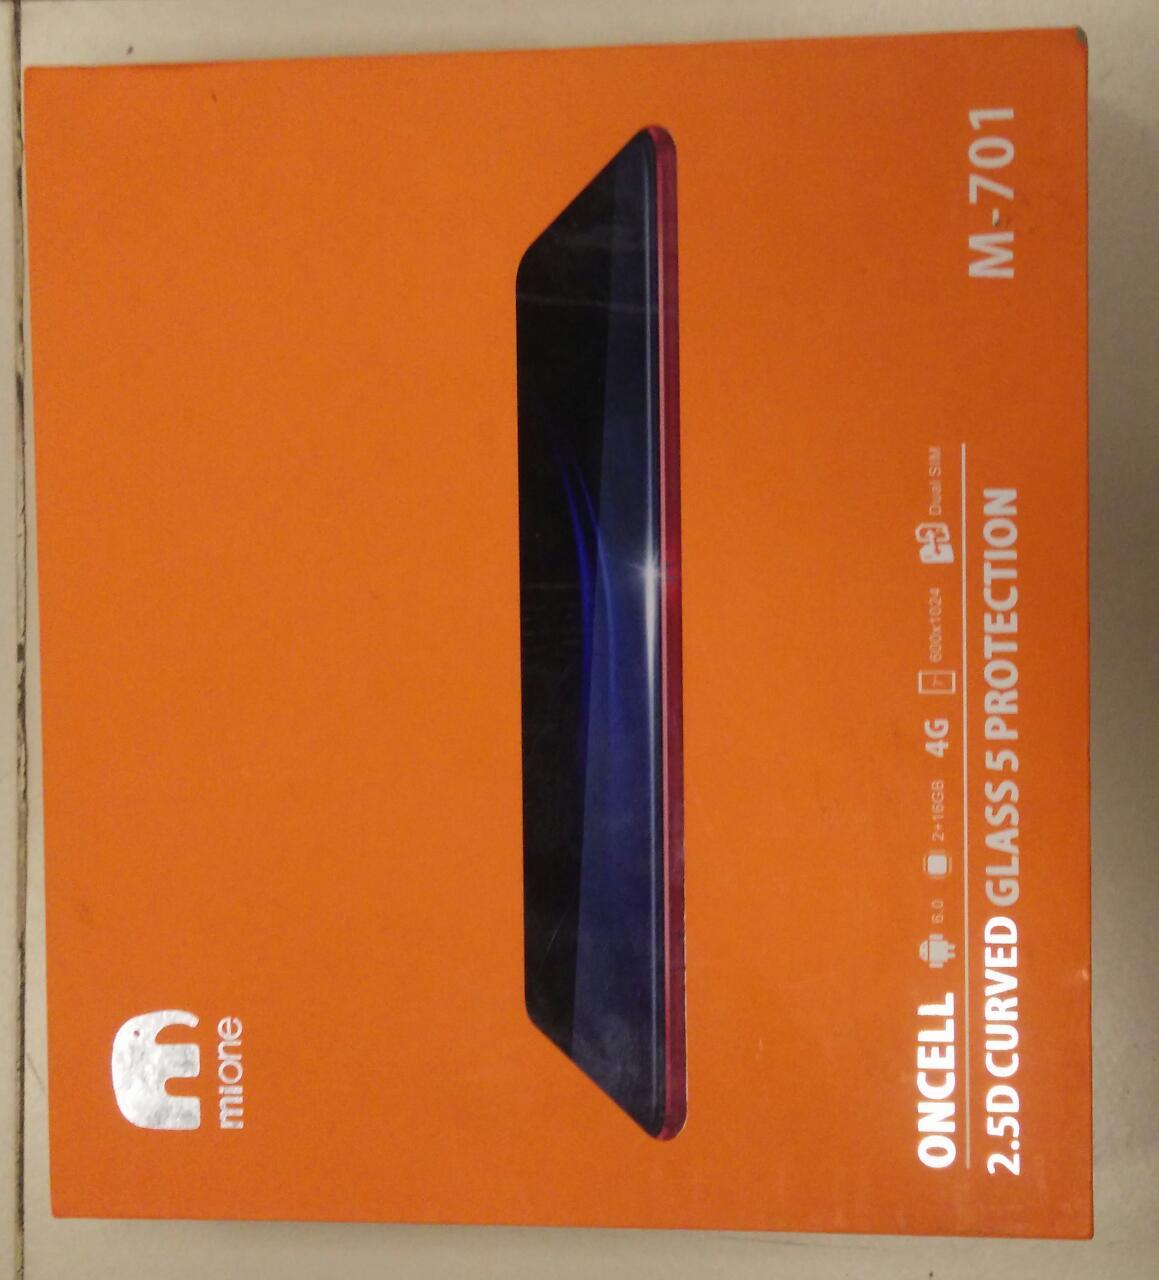 Mione Tablet